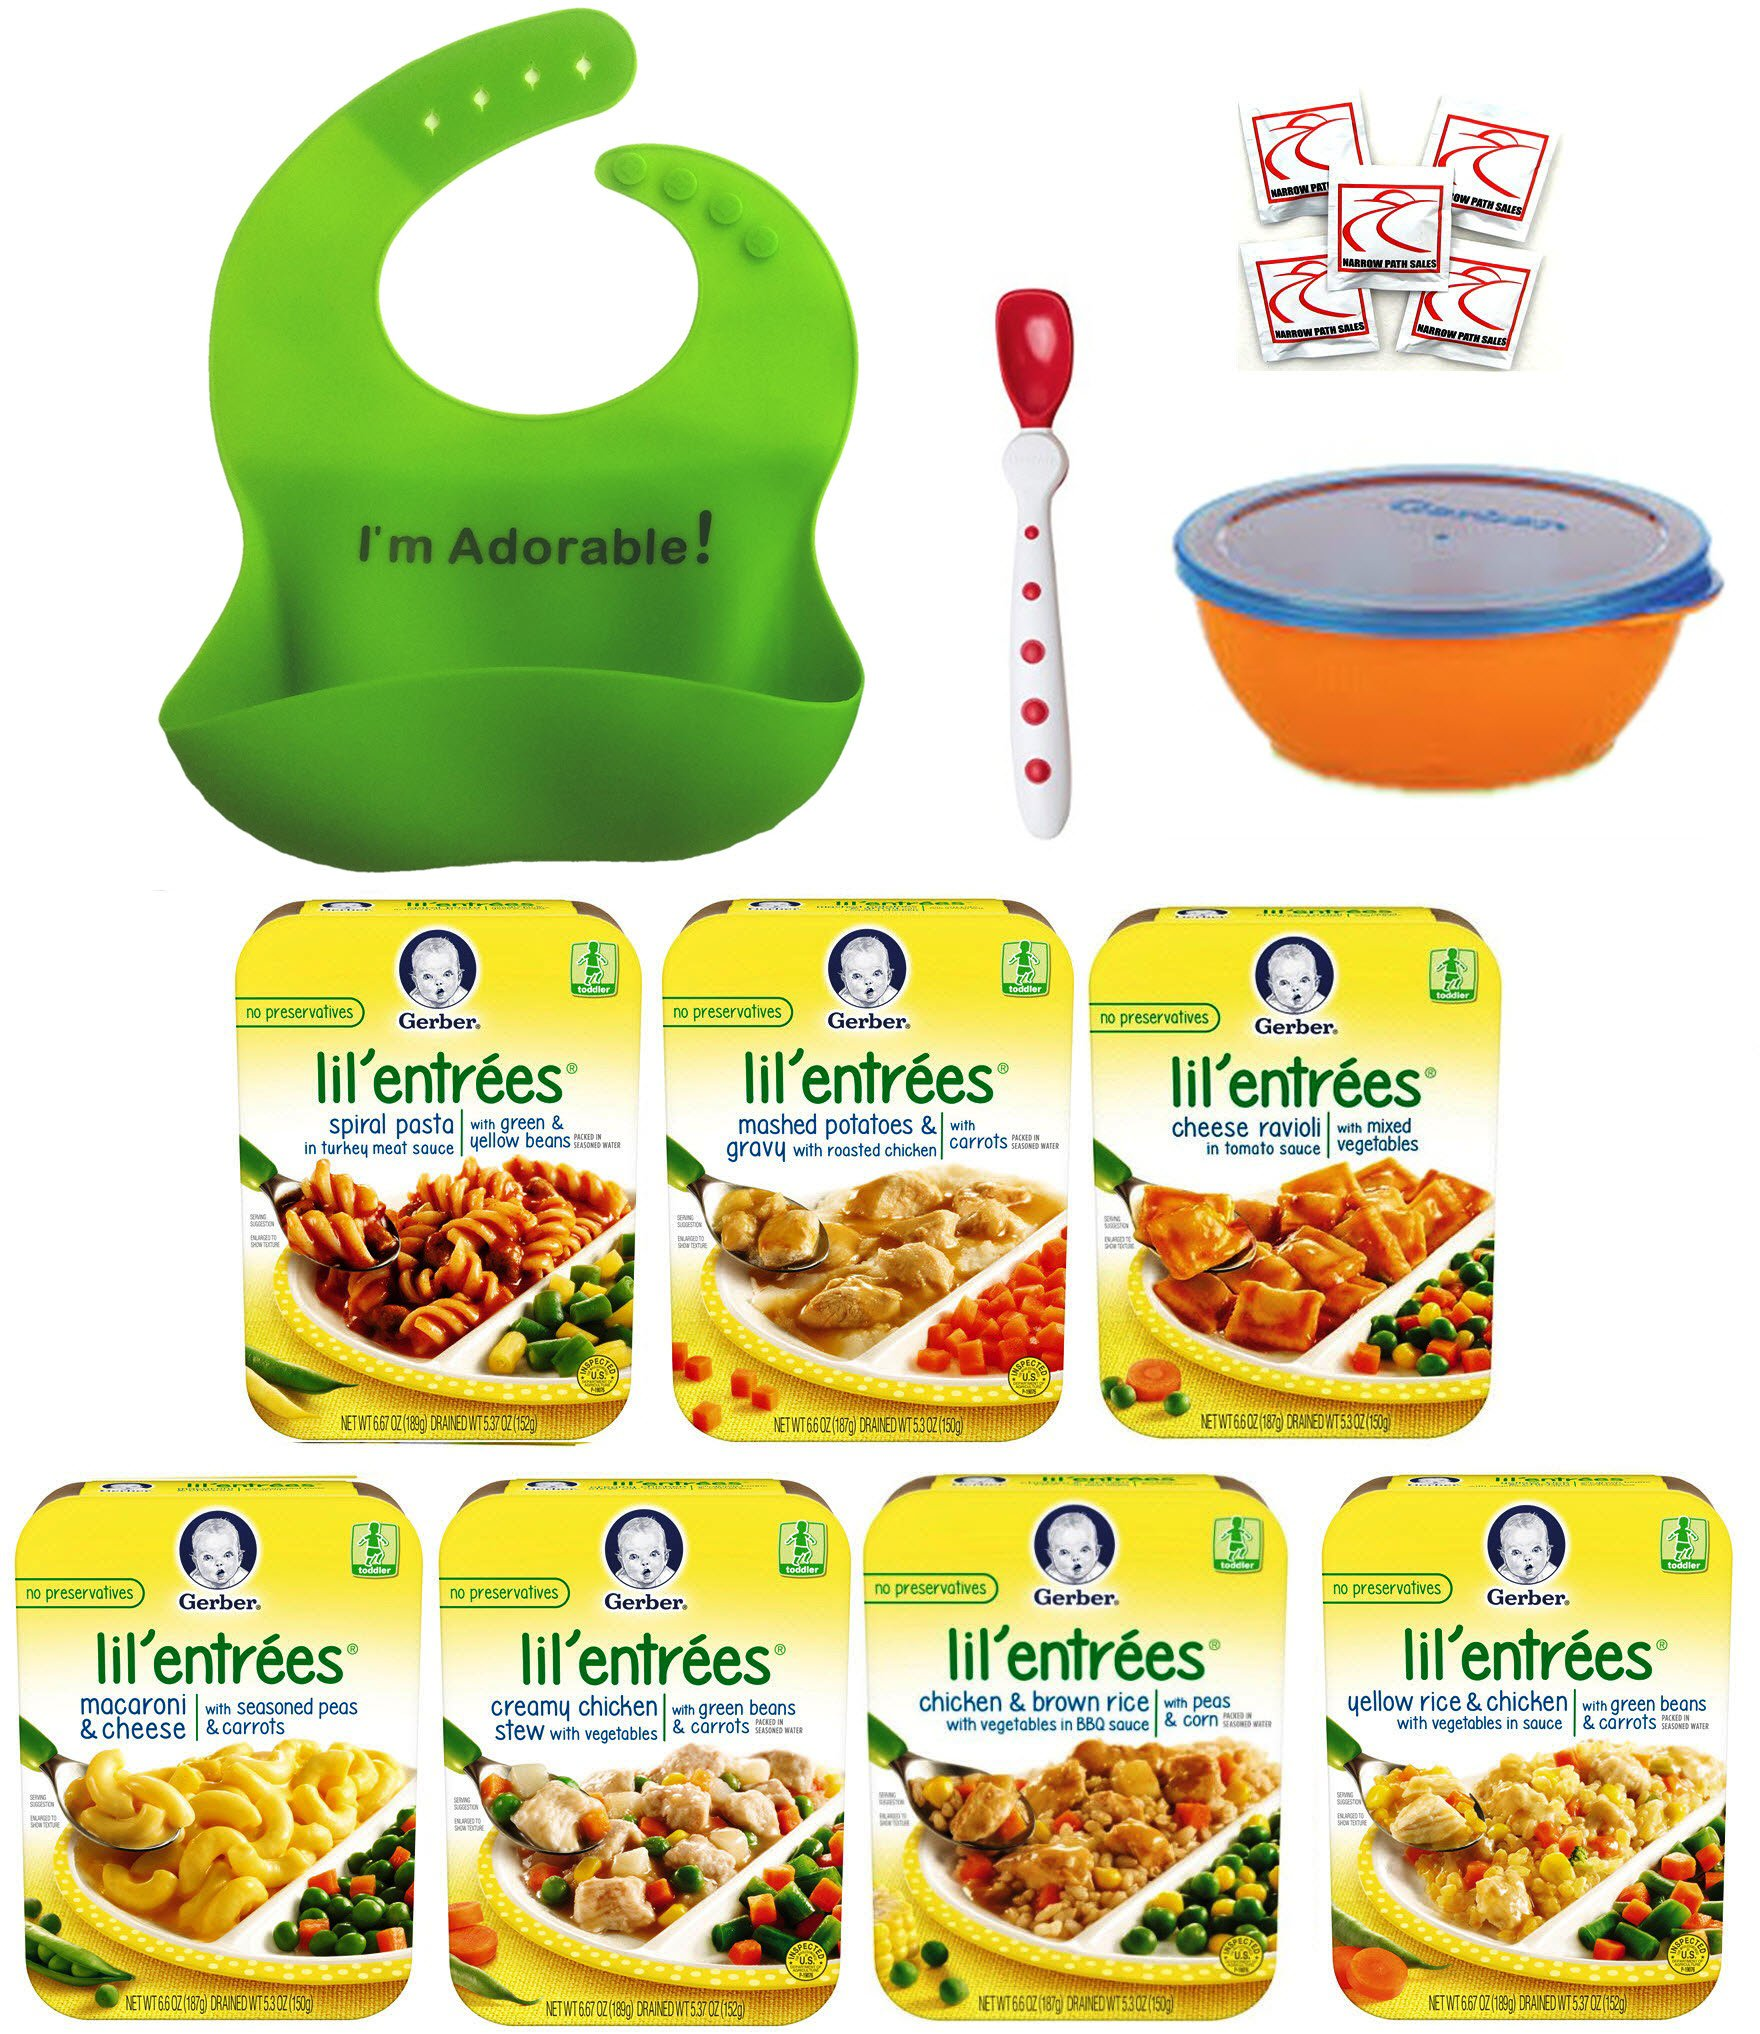 Gerber Graduates Lil Entrees Variety Meal Bundle of 7 flavors 6.6 oz each, Bowl, Spoon and Silicone Bib included. Gift Package Care Package, Baby feeding set by Narrow Path Sales